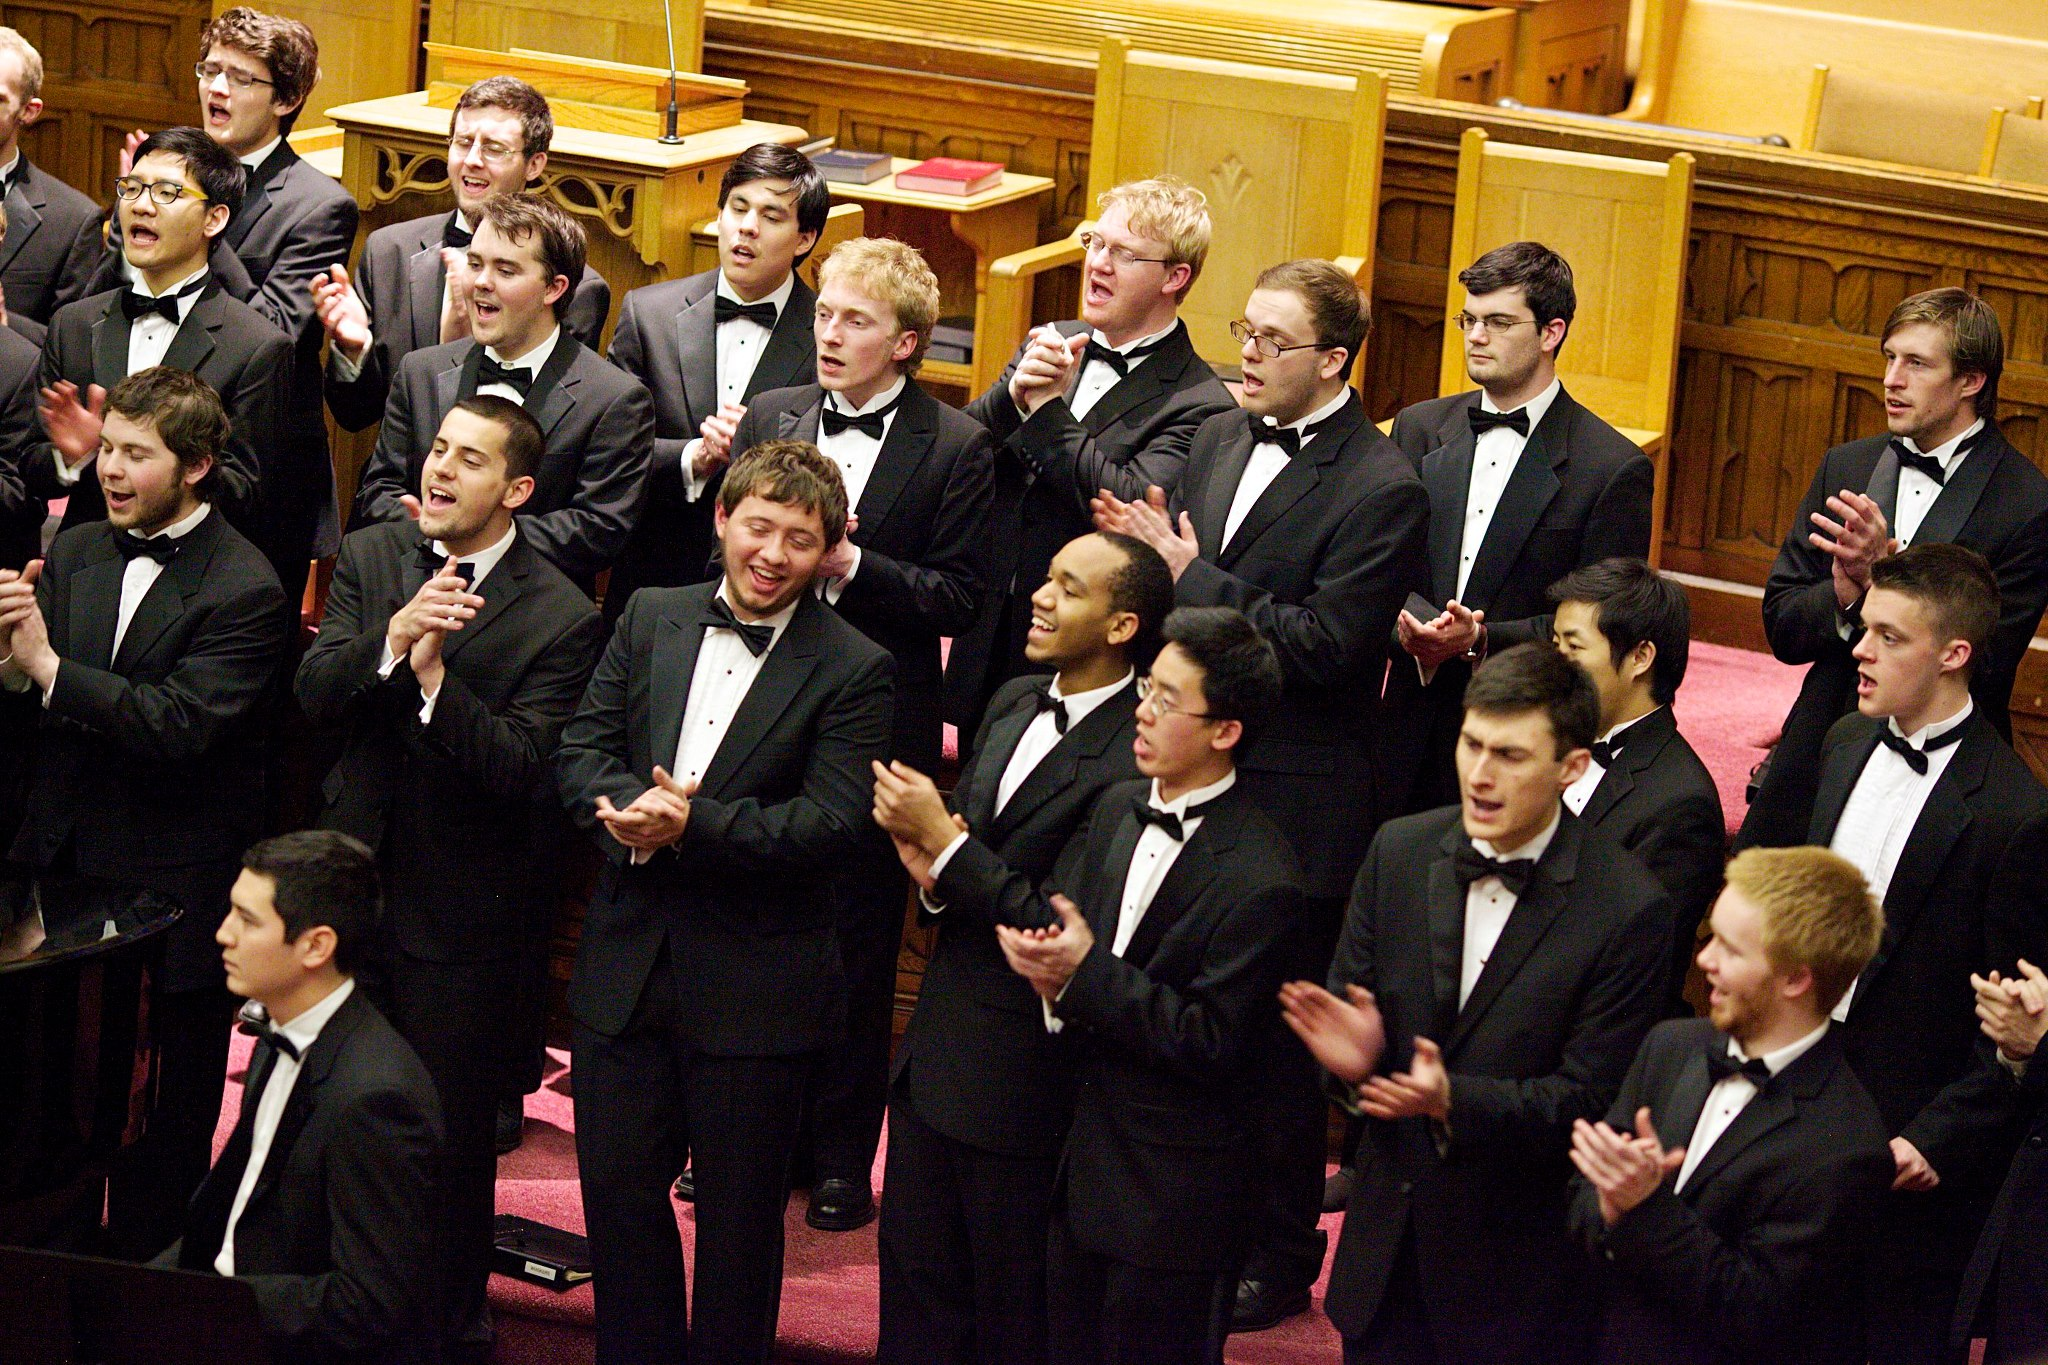 Music on the Corner: The Virginia Glee Club at St. John's